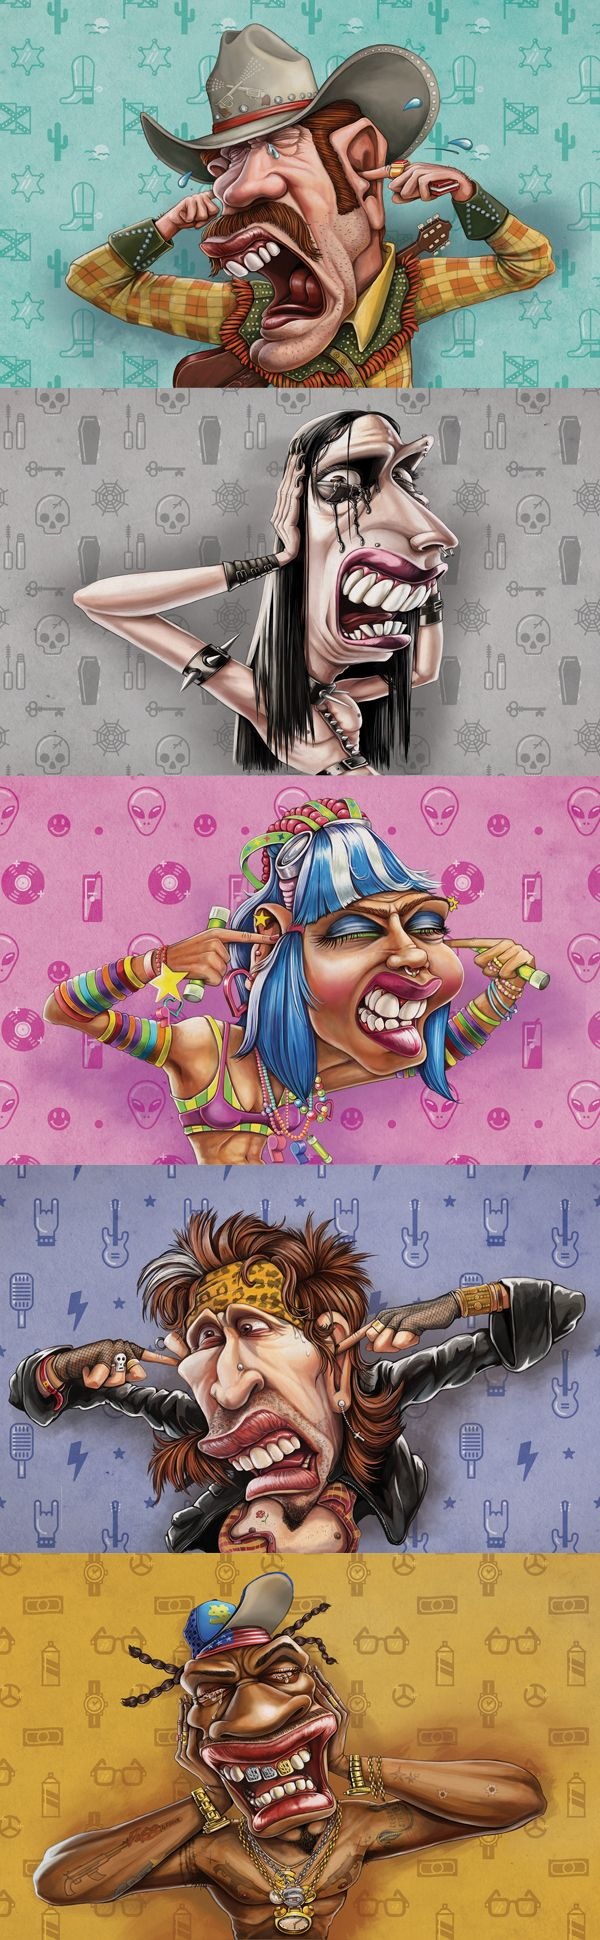 """Heart 104.9fm - illustrations by Studio Muti for """"We're turning up the R'nB"""" campaign. By www.the-greenhouse.co.za"""